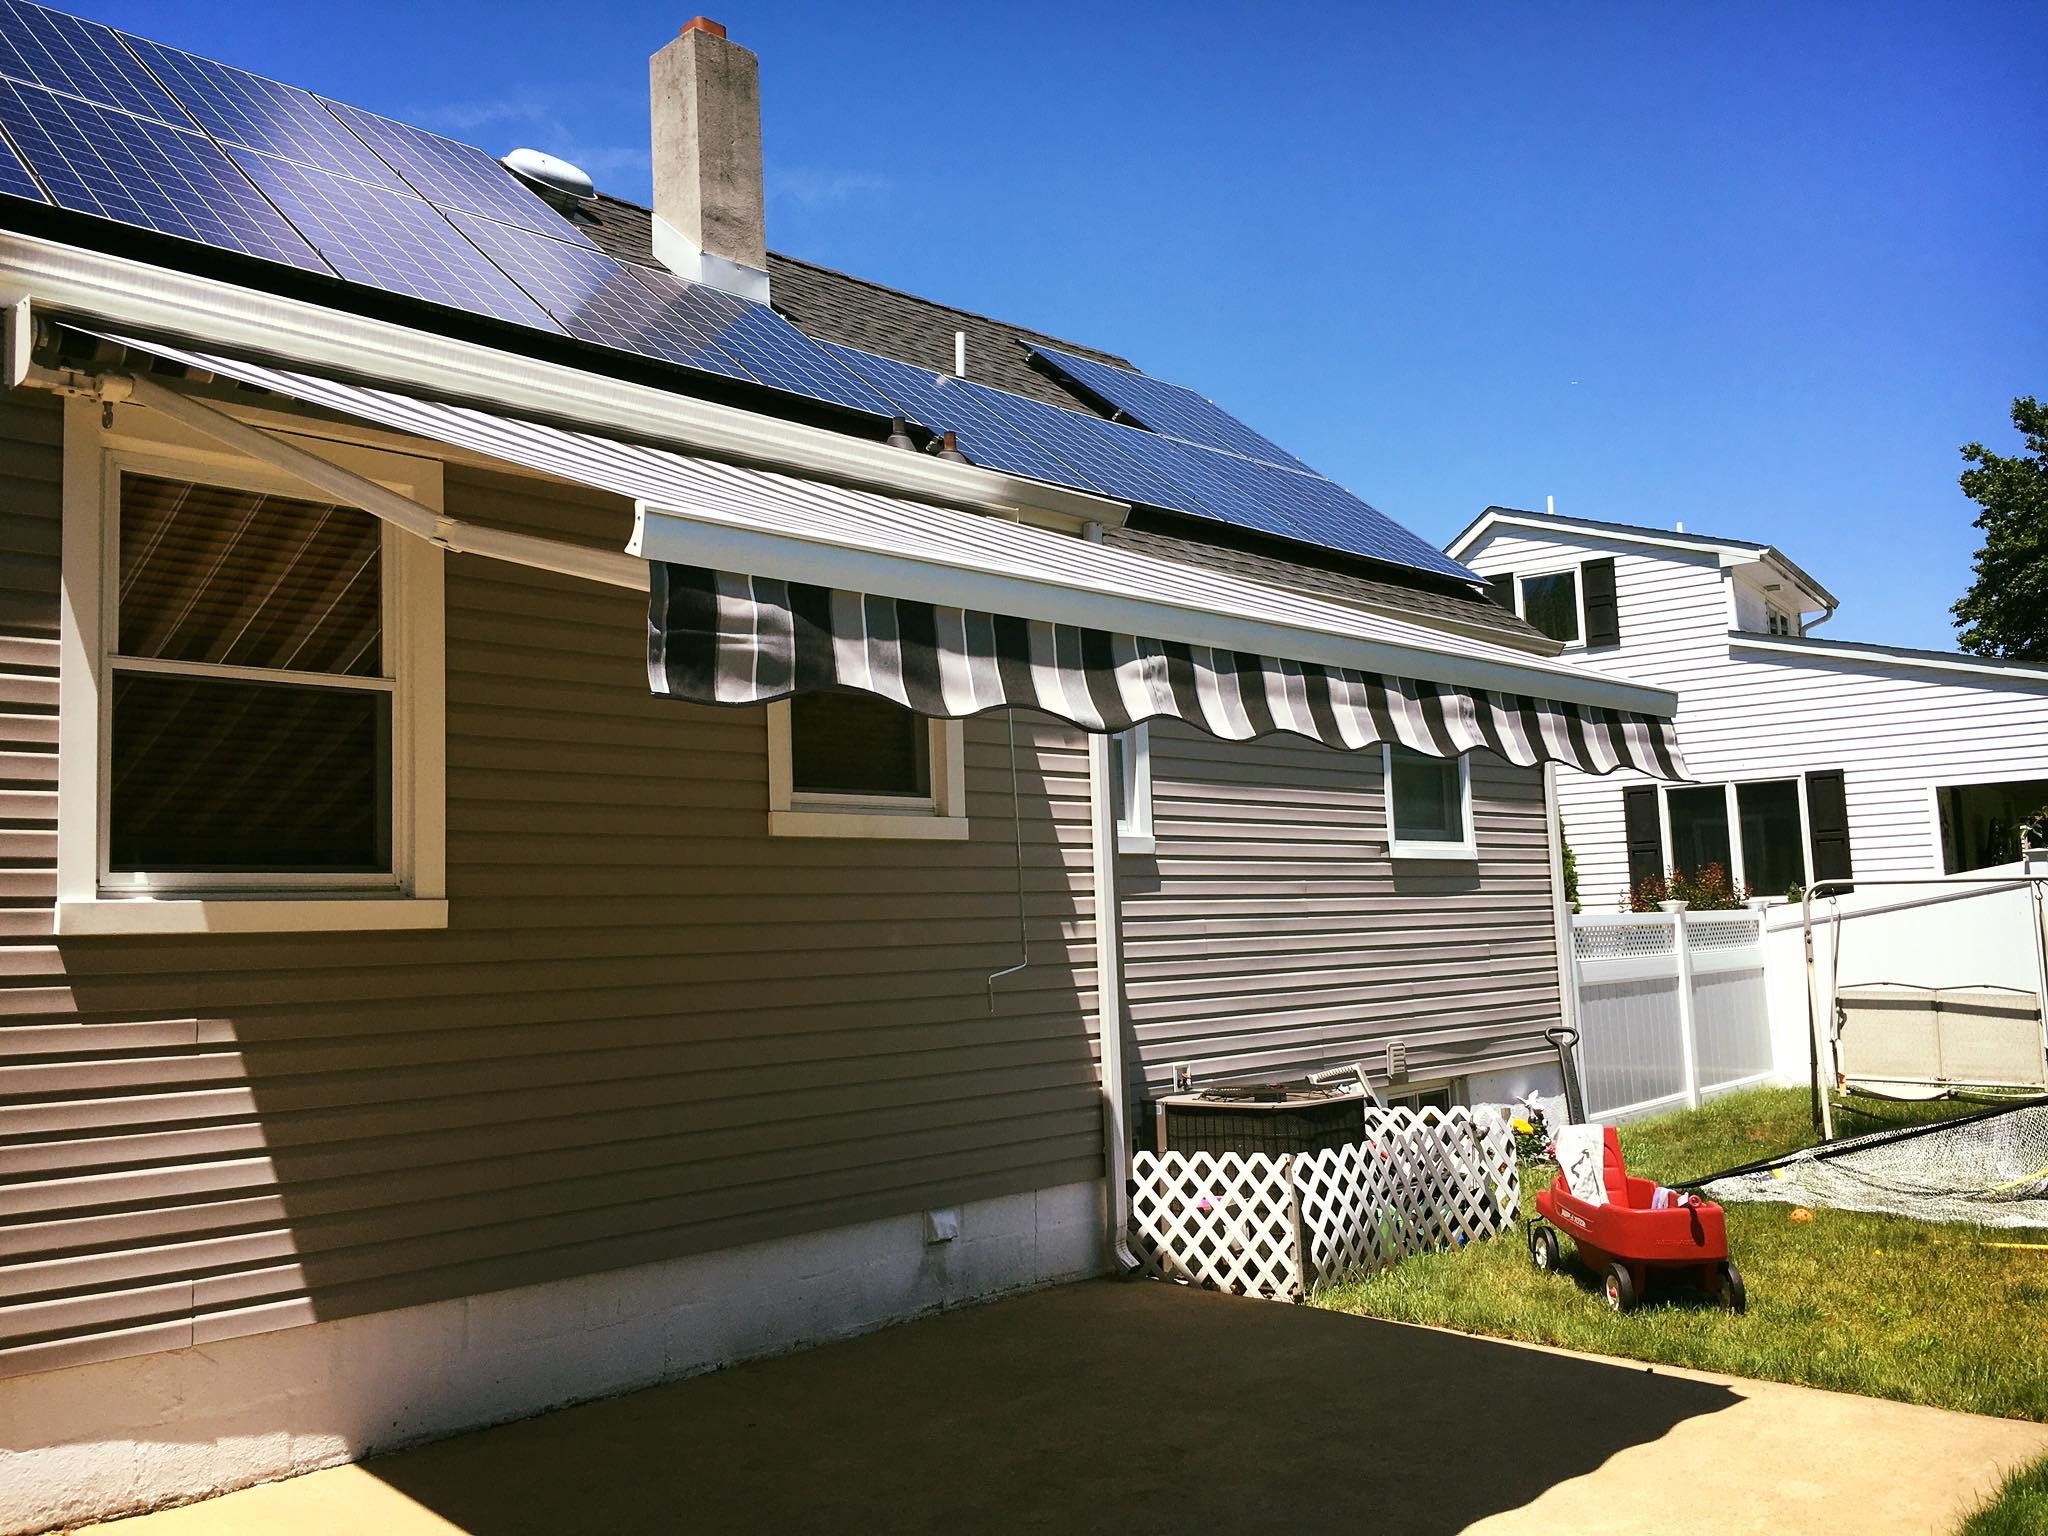 Freehold New Jersey Retractable Awnings The Awning Warehouse Ny Awnings Nj Awnings